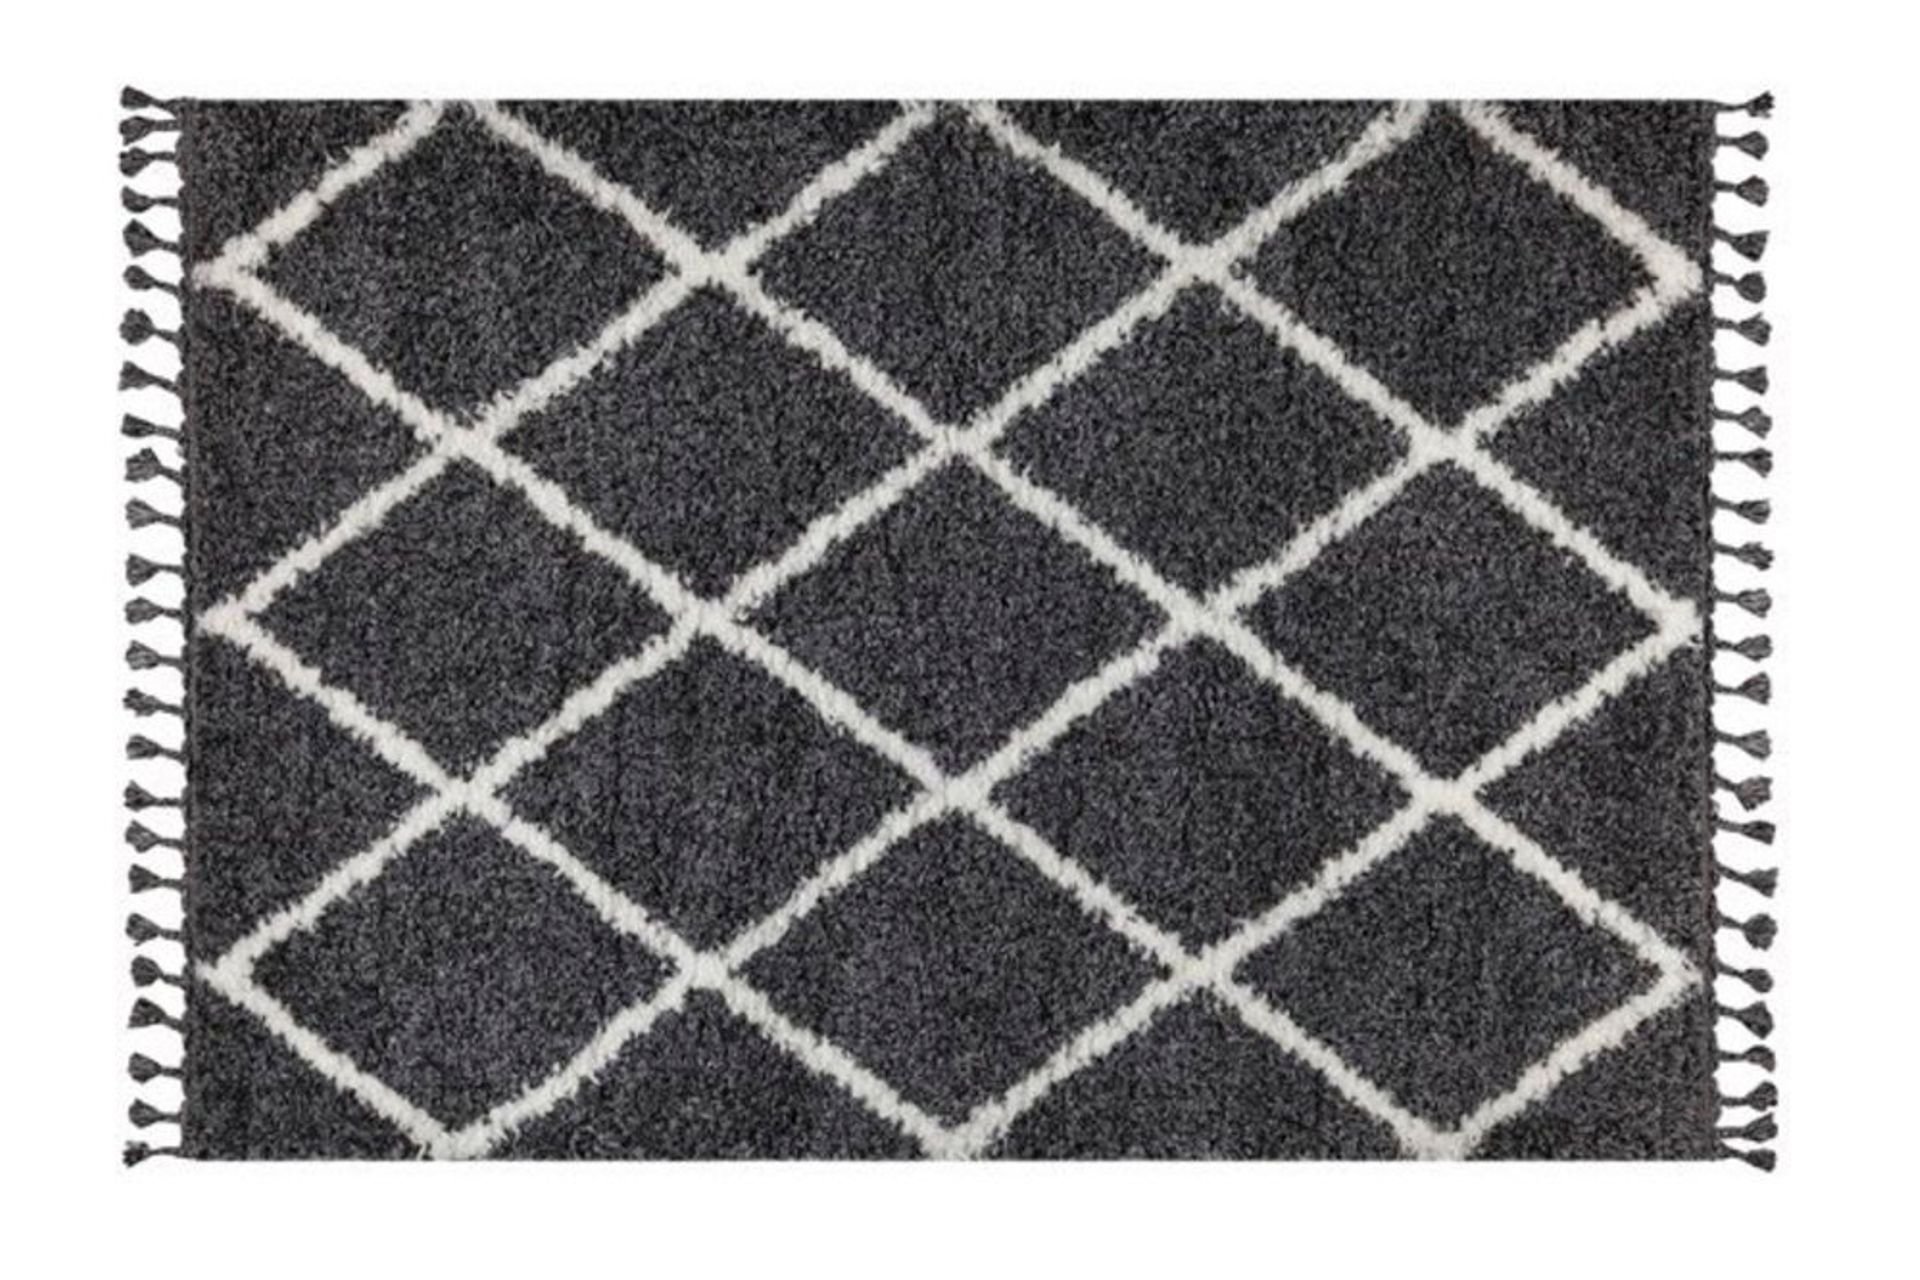 Marrakesh Line Rug, Anthracite Grey & White (Small)